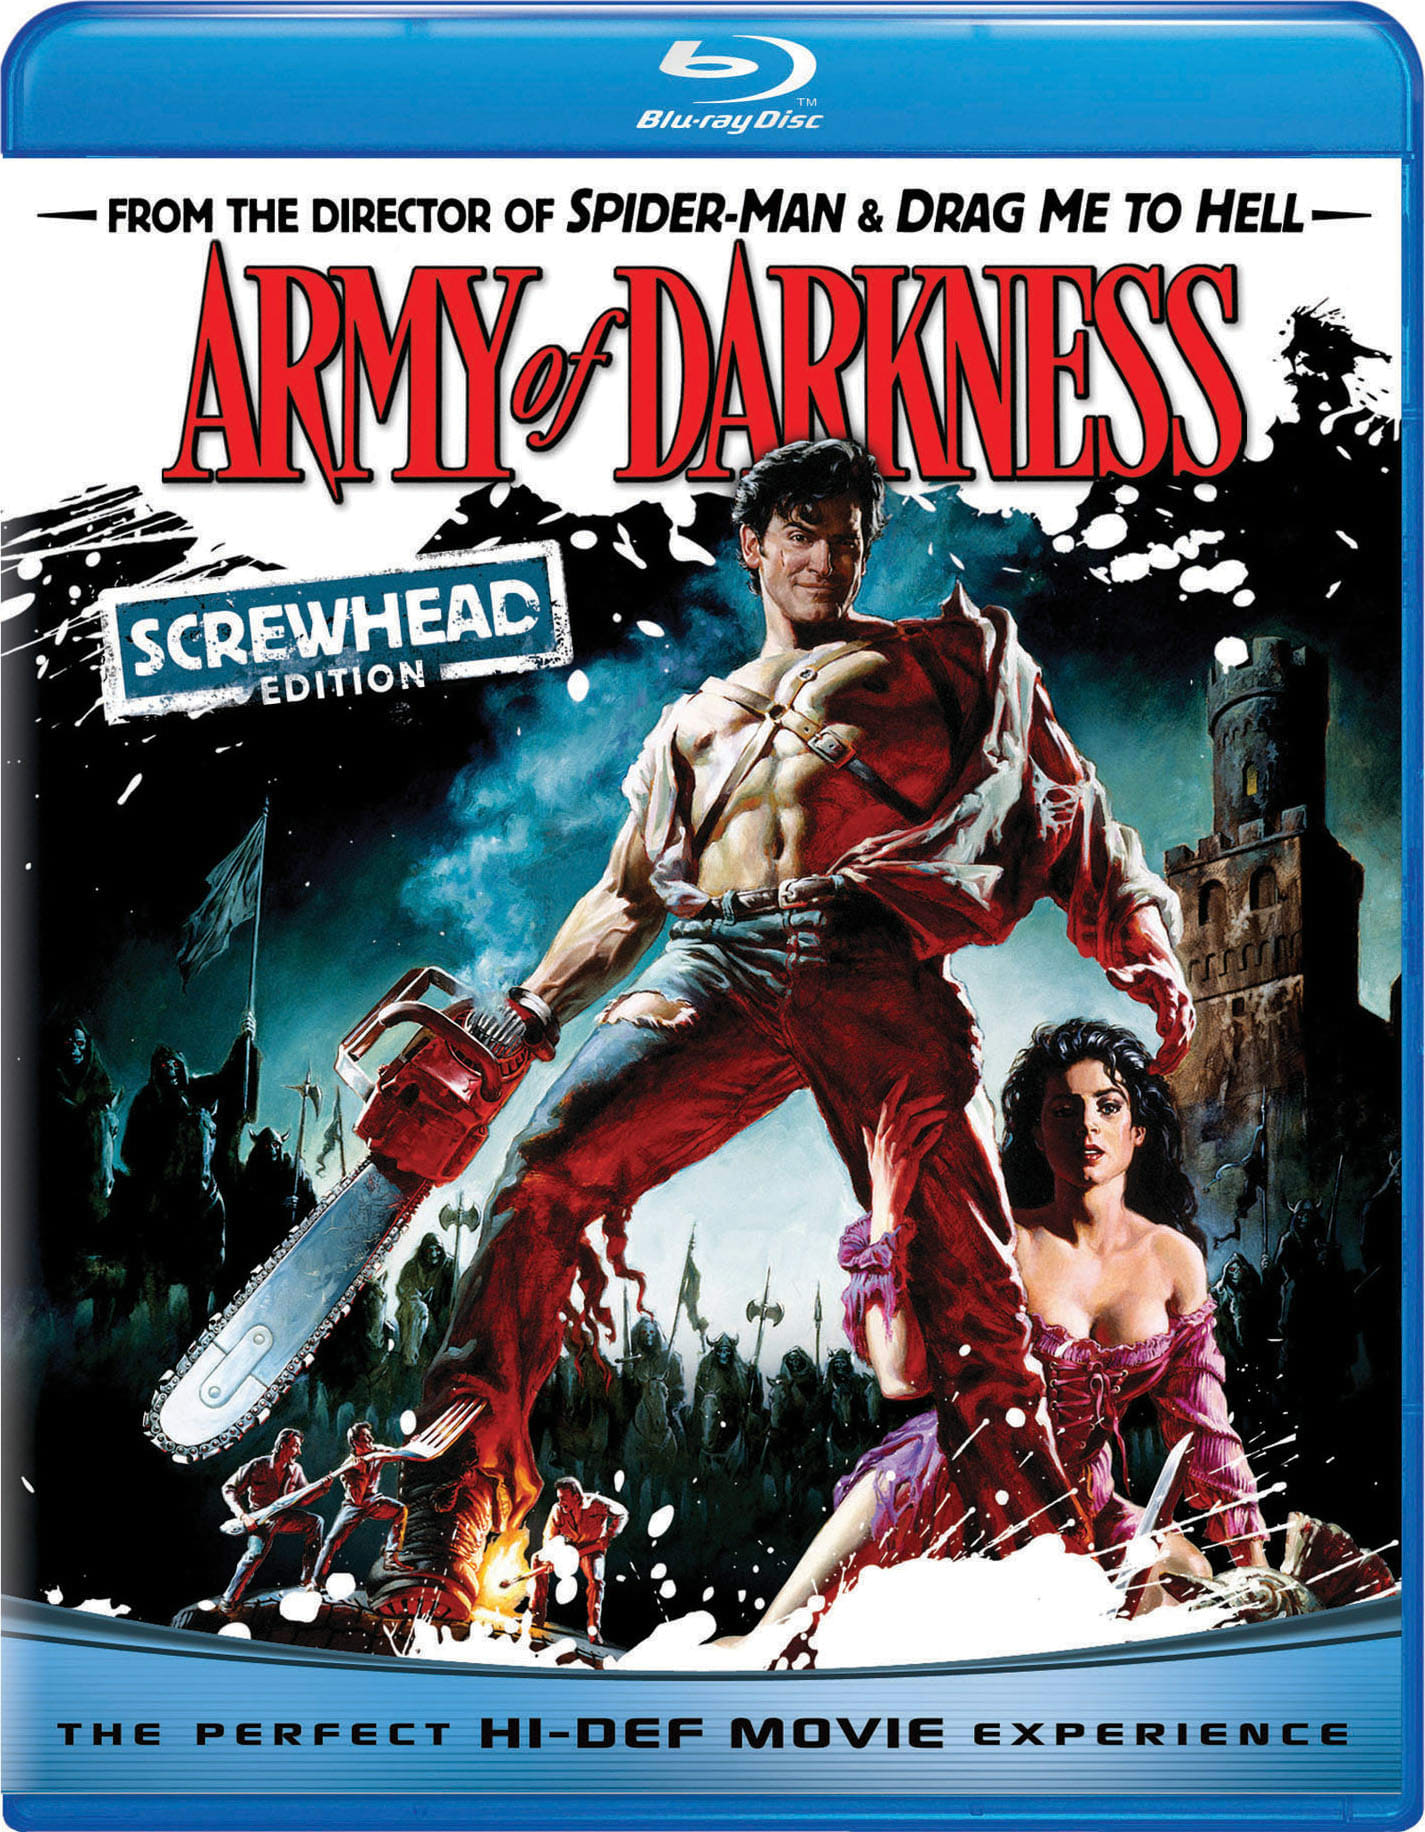 Army of Darkness - The Evil Dead 3 [Blu-ray]